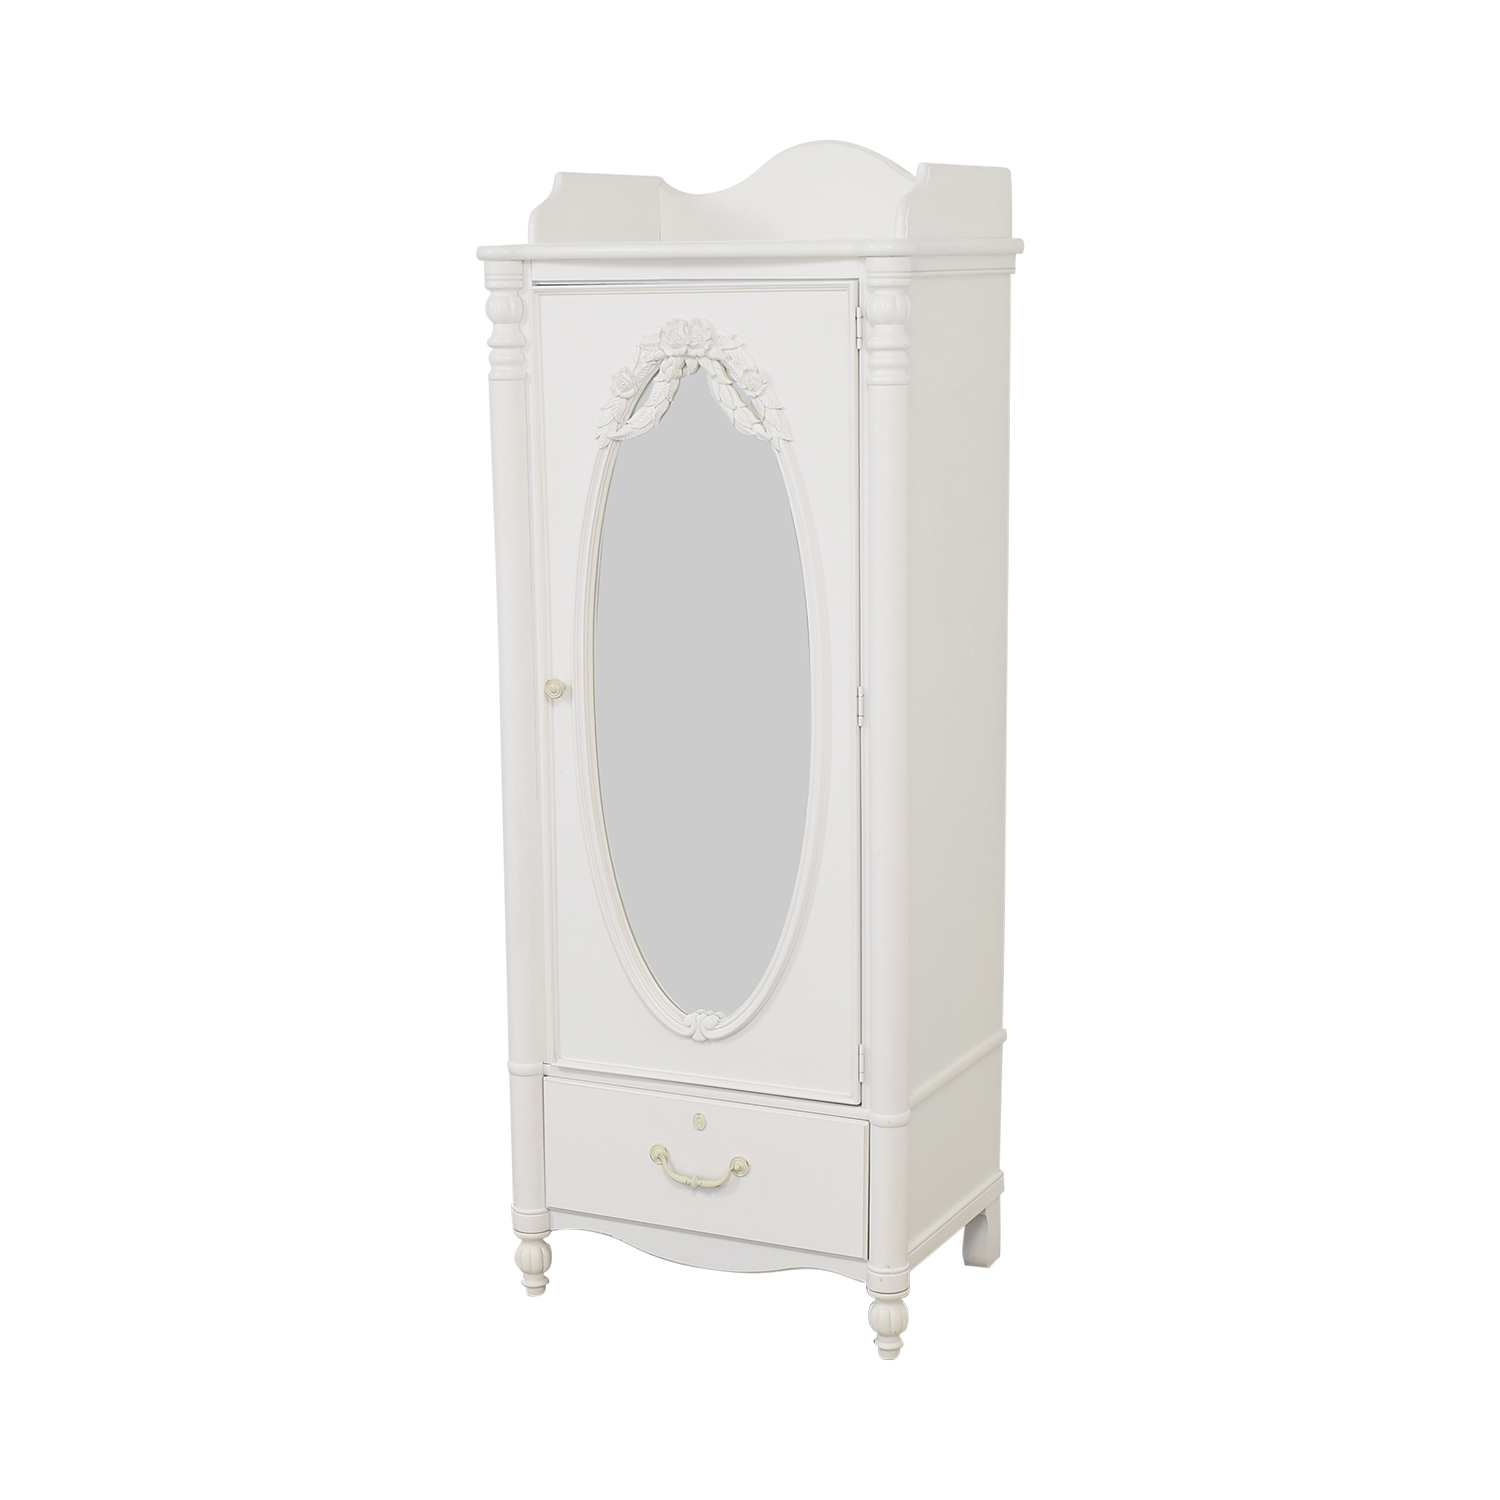 Stanley Furniture Stanley Furniture Cameo Armoire white